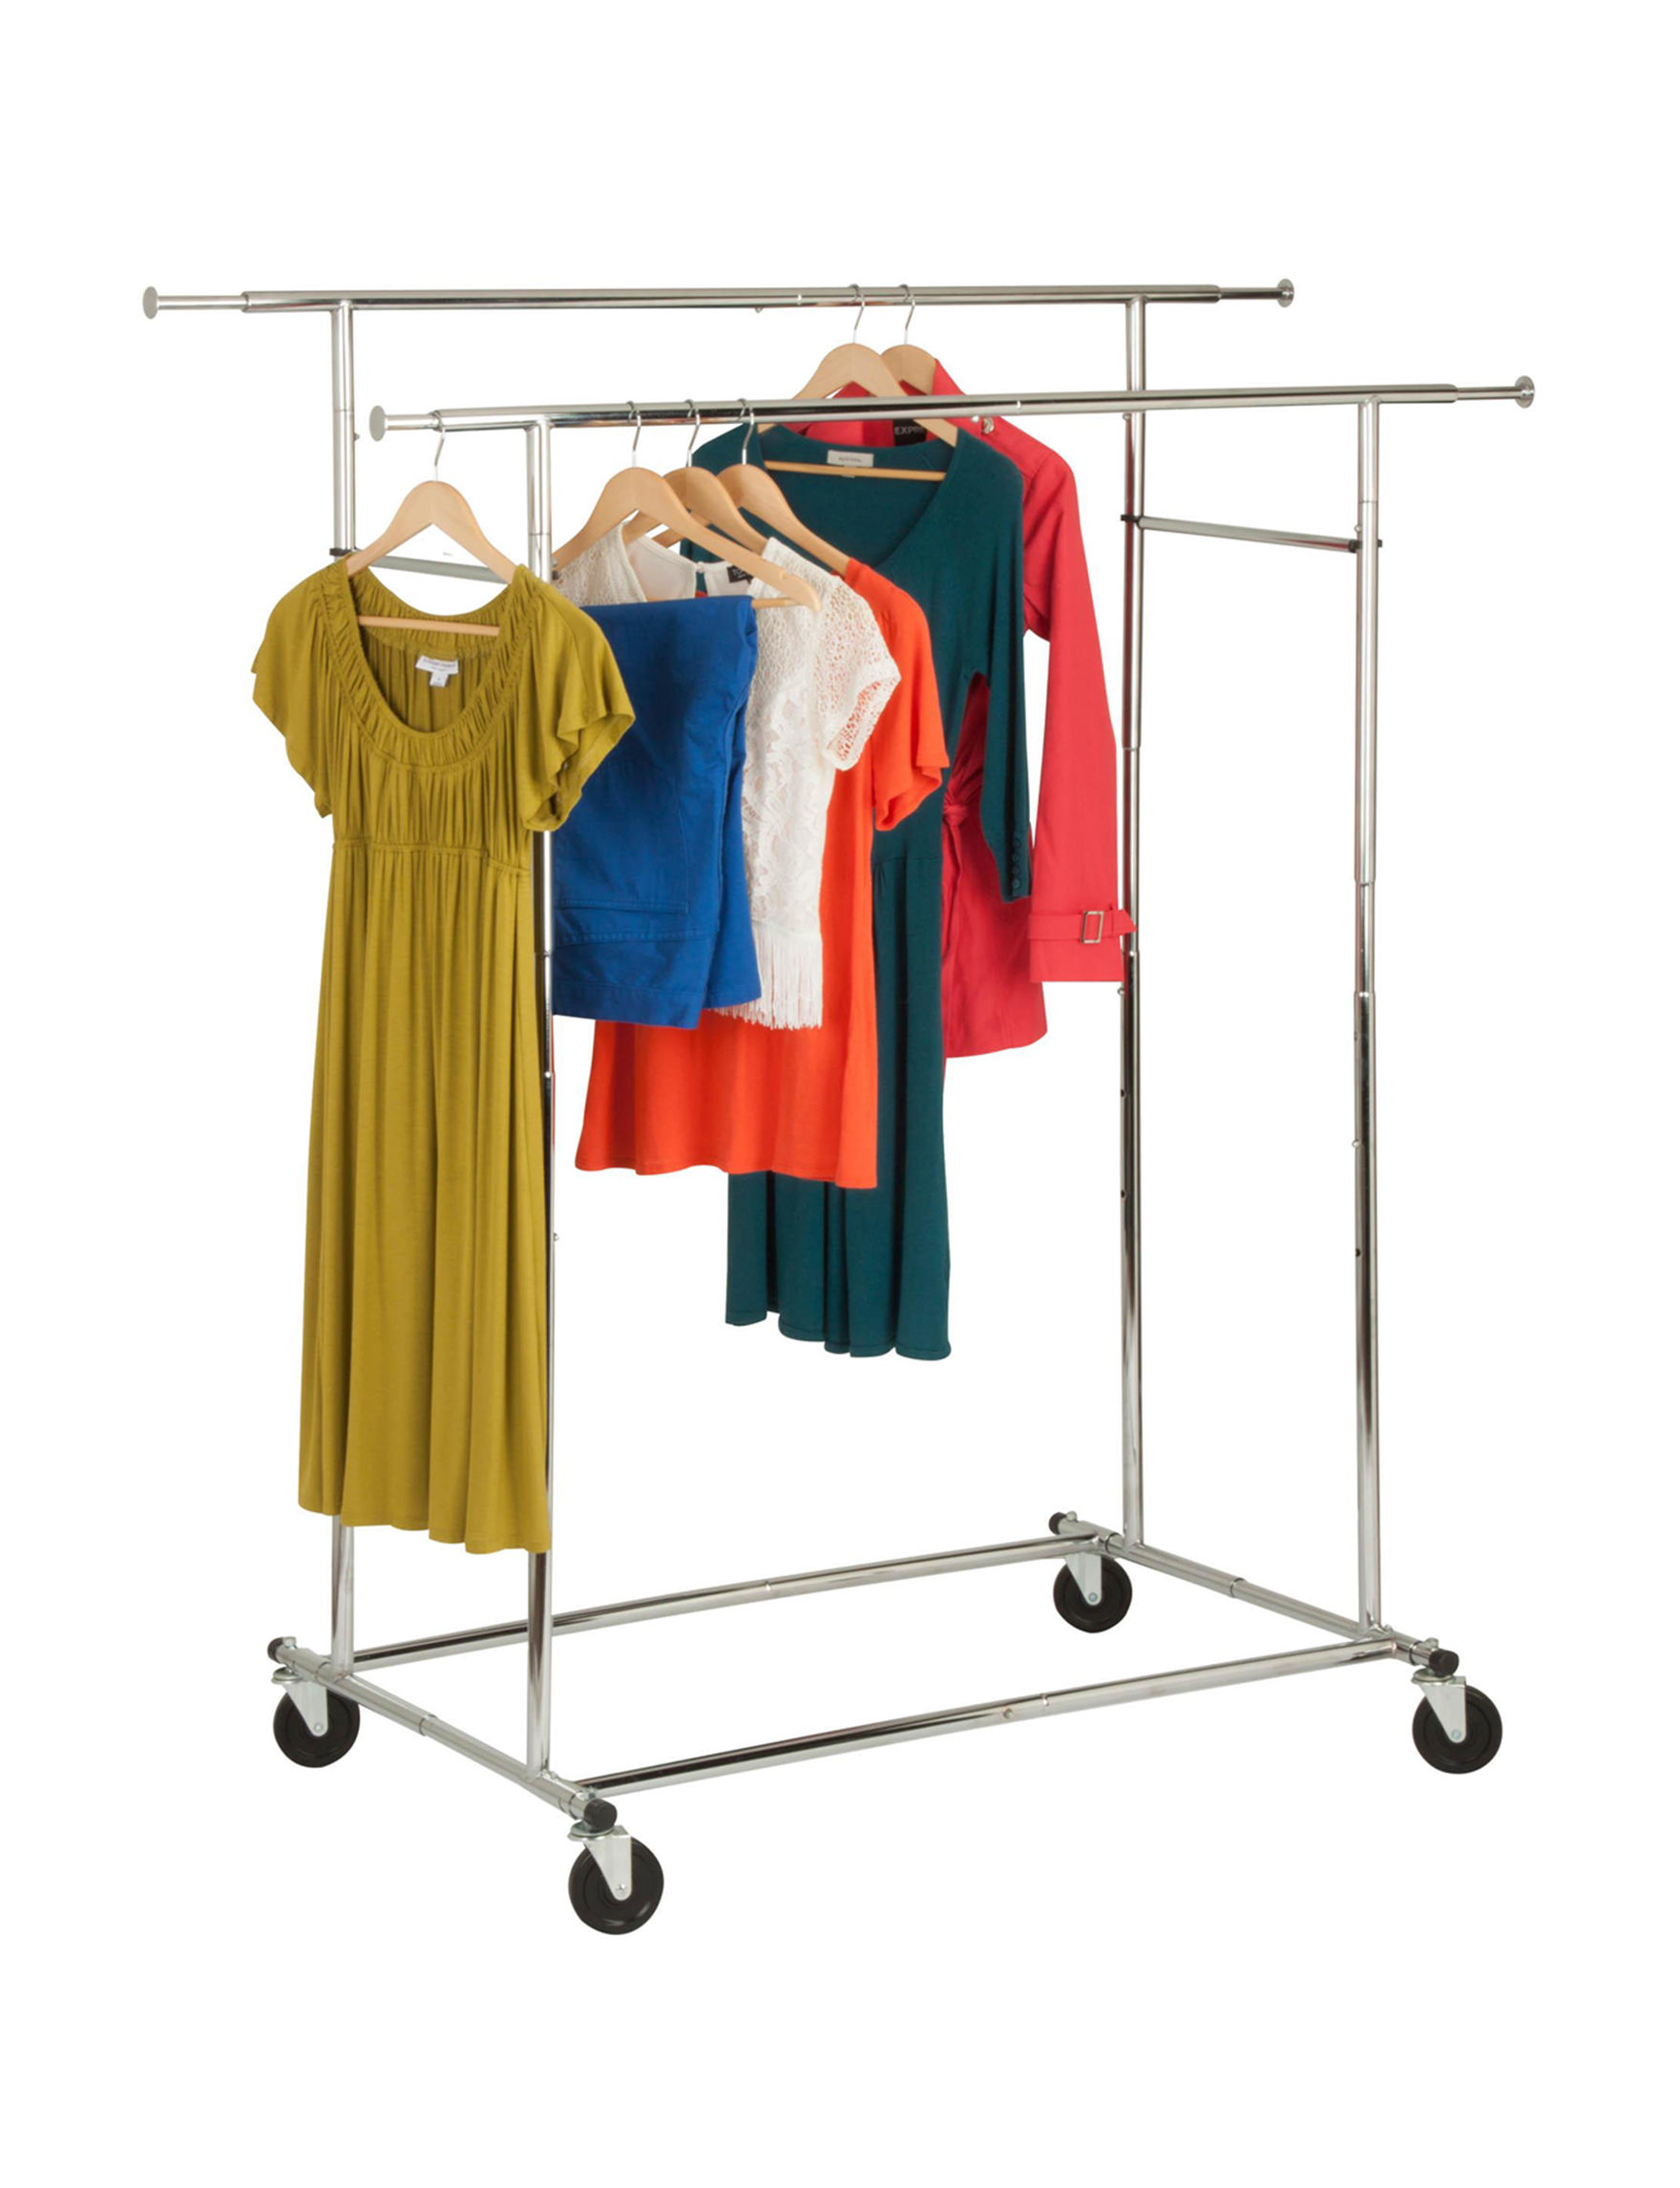 Honey-Can-Do International Chrome Garment & Drying Racks